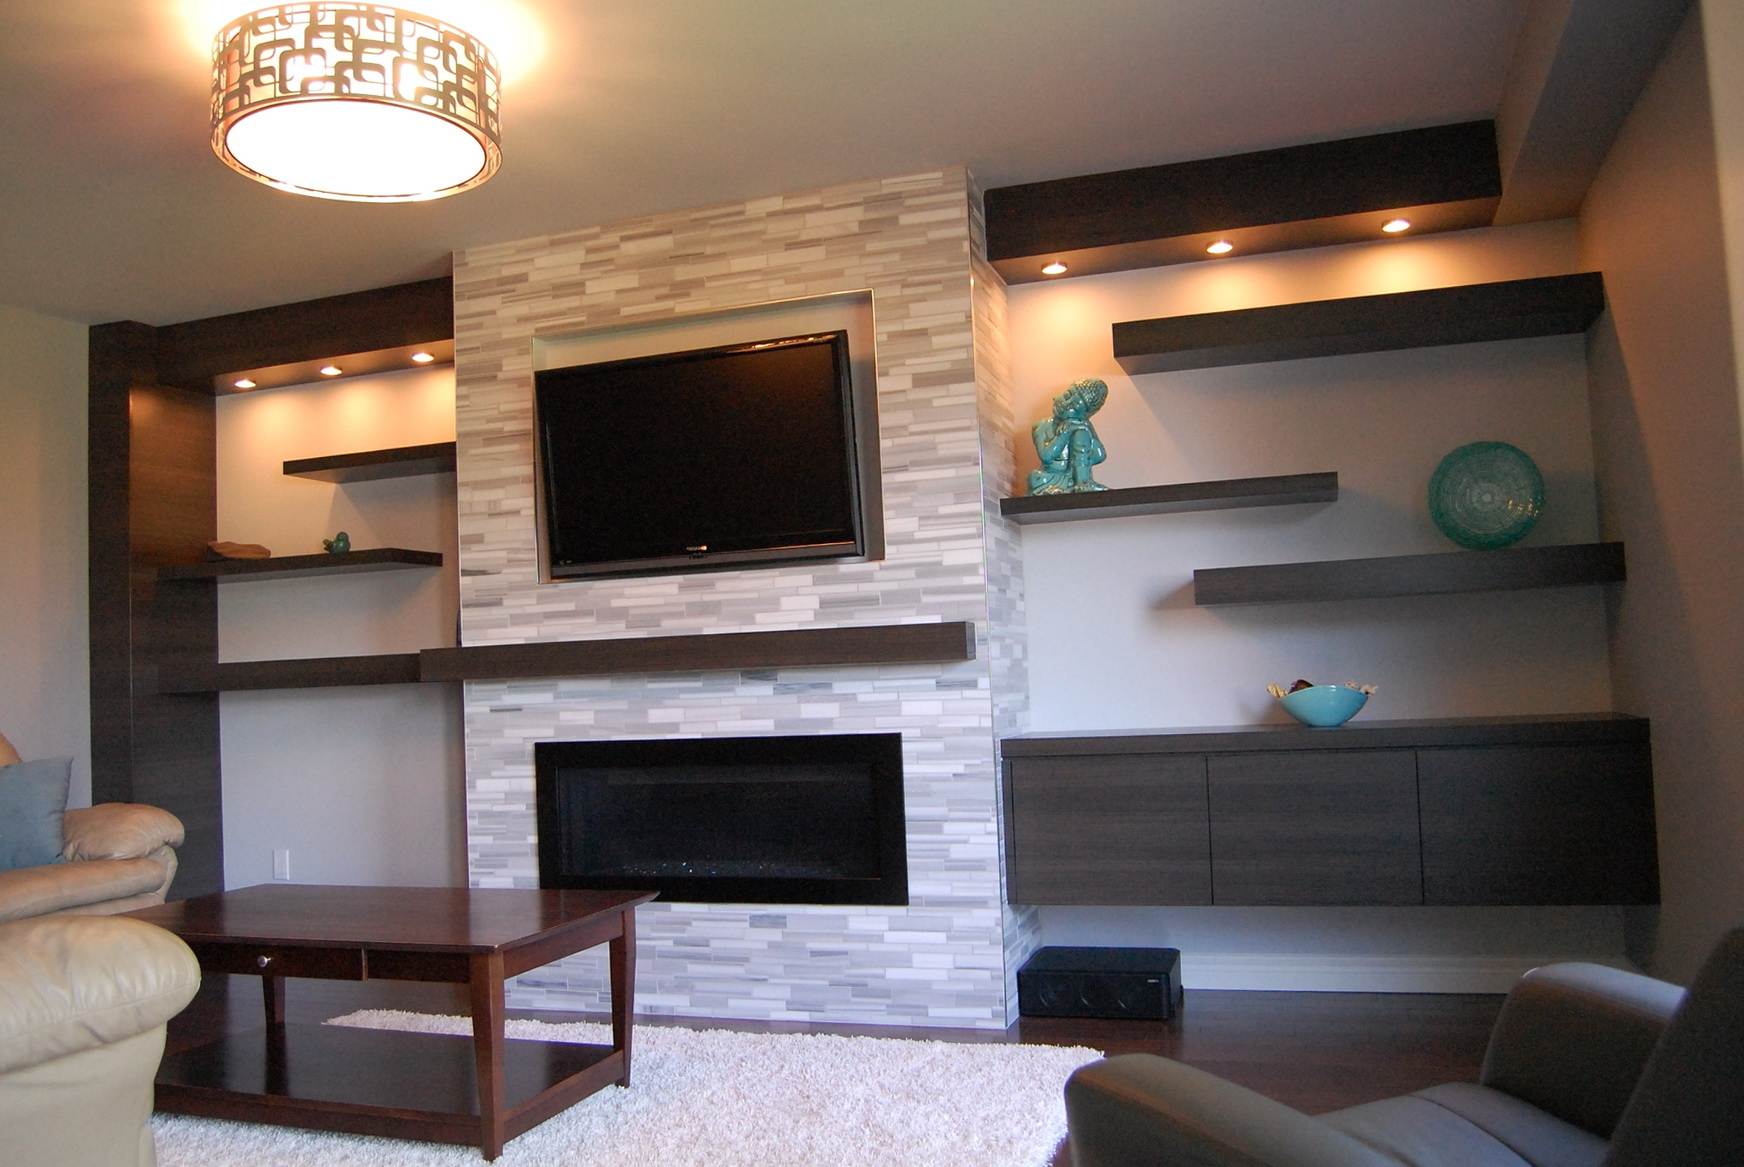 Wall Mount Tv Over Fireplace Ideas | Home Design Ideas